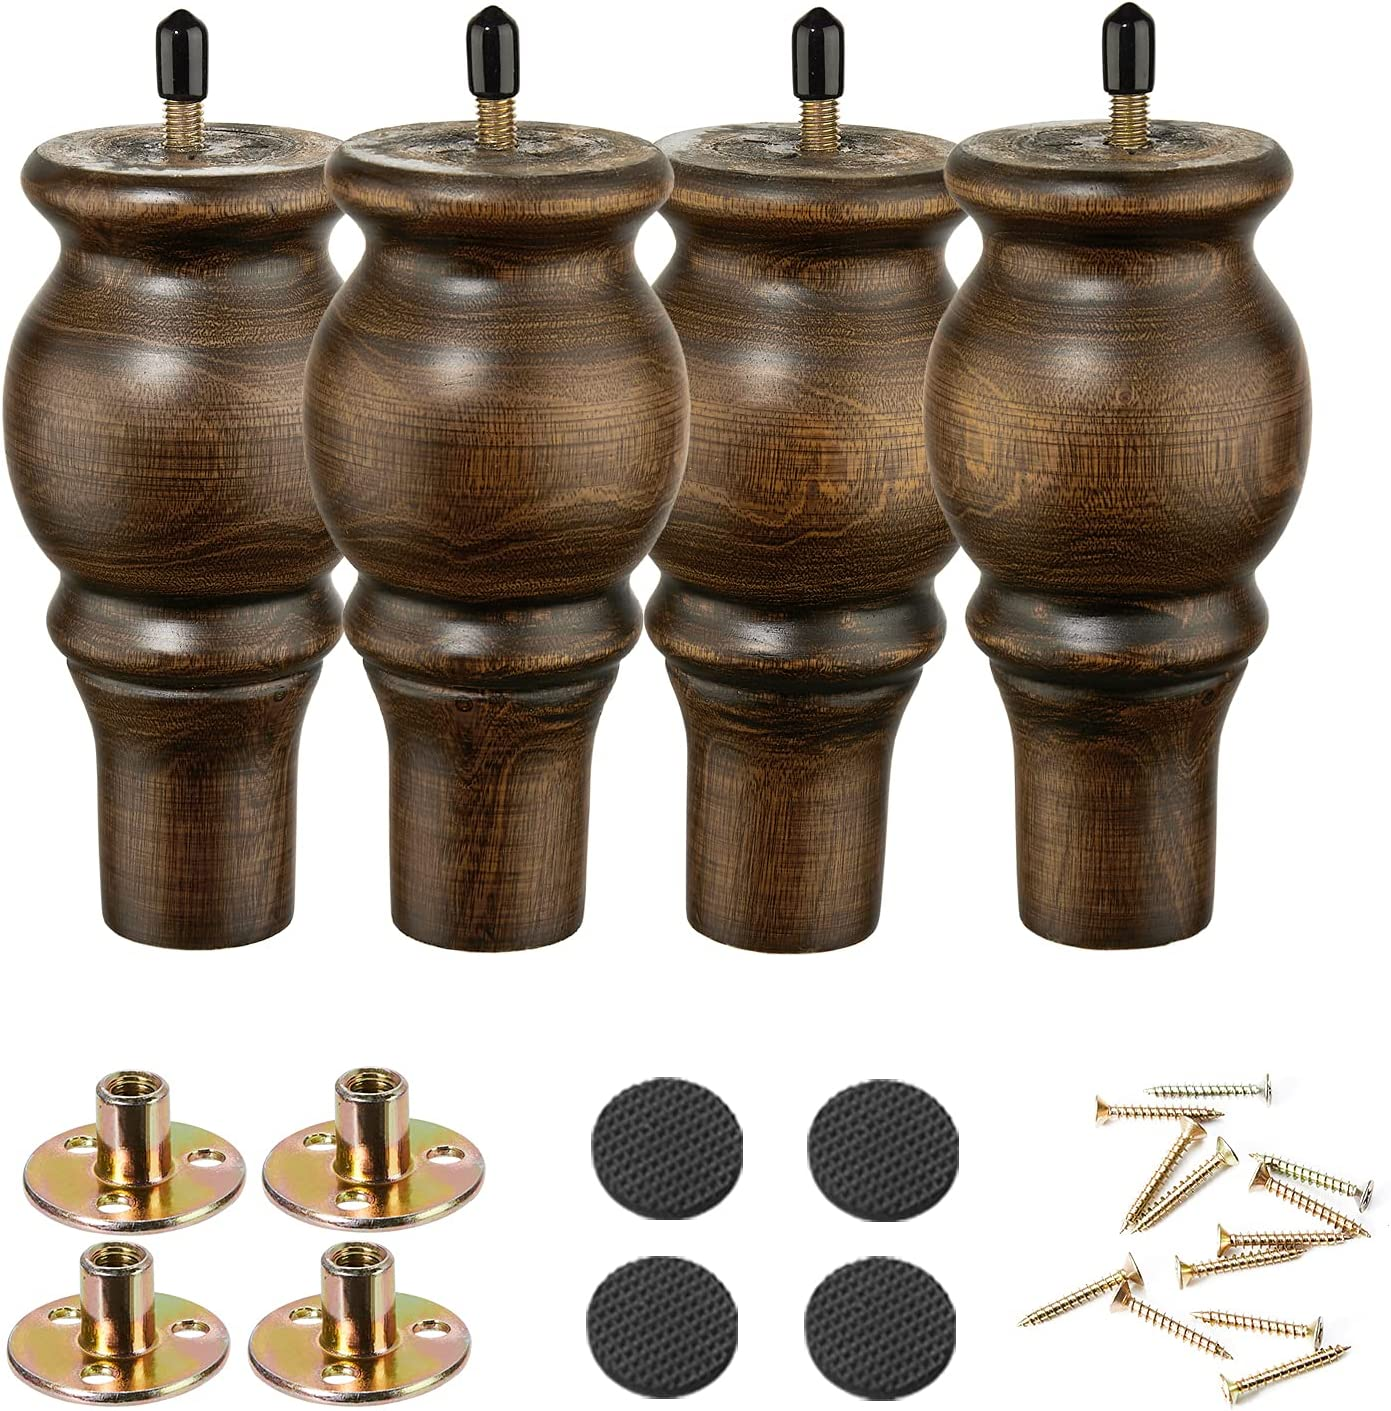 Wood Furniture Legs 6 inch Sofa Legs Set of 4 Round Brown Couch feet Sofa Replacement Parts for Cabinet Dresser Bed Sideboard Coffee Table